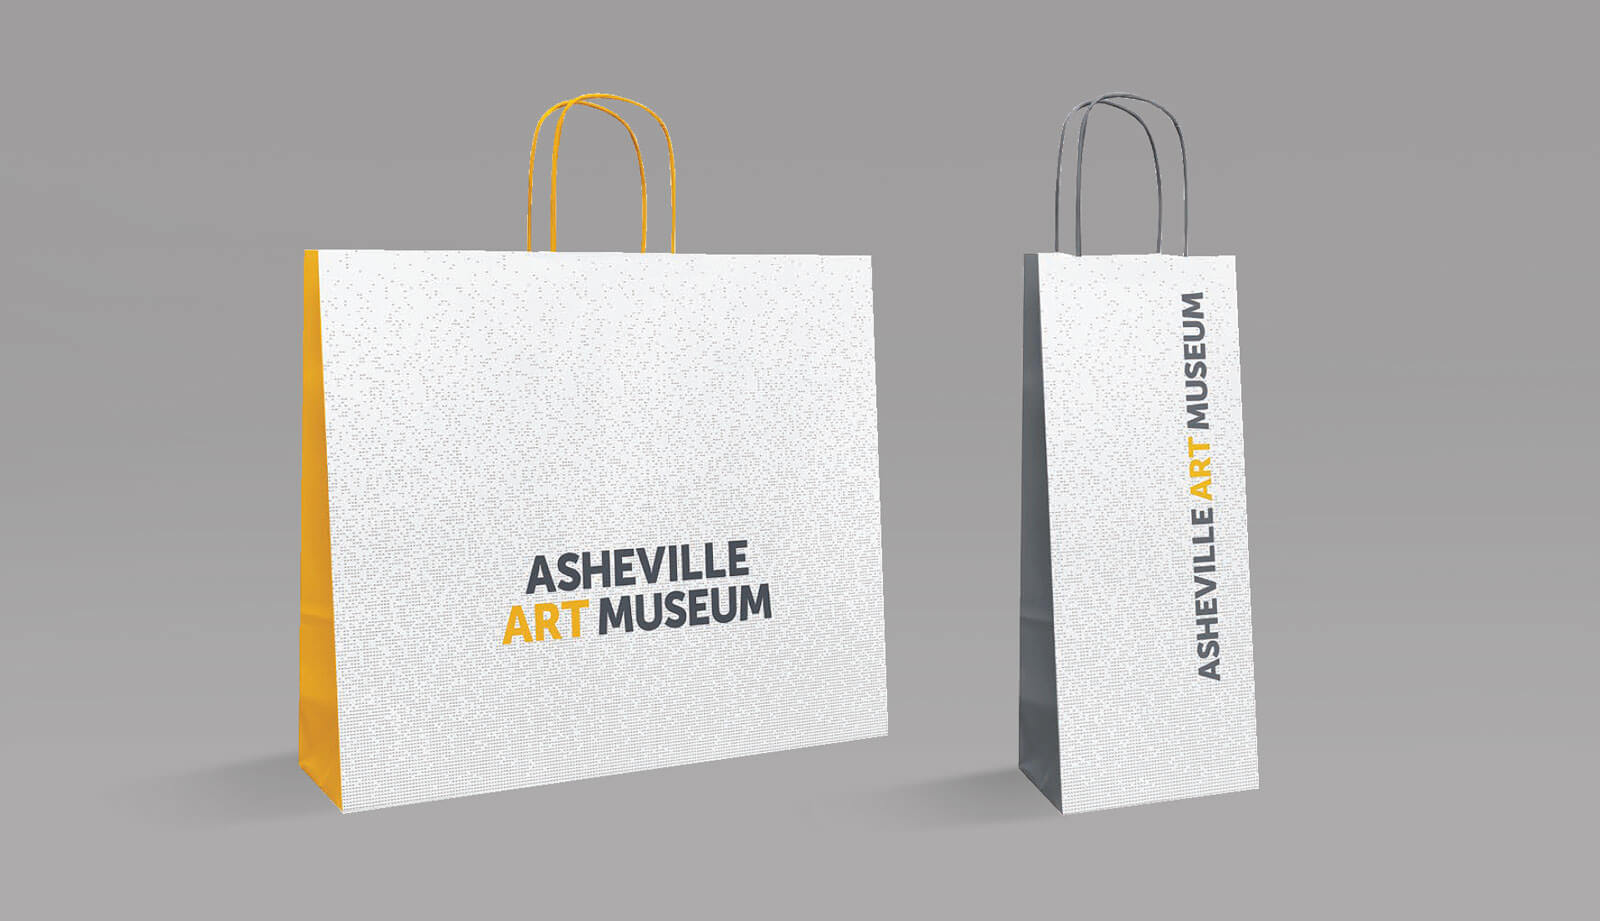 Asheville Art Museum retail bag mockups. Horizontal and vertical bags with gold and gray side panels. Logo centered and vertically oriented on a perforated pattern background.